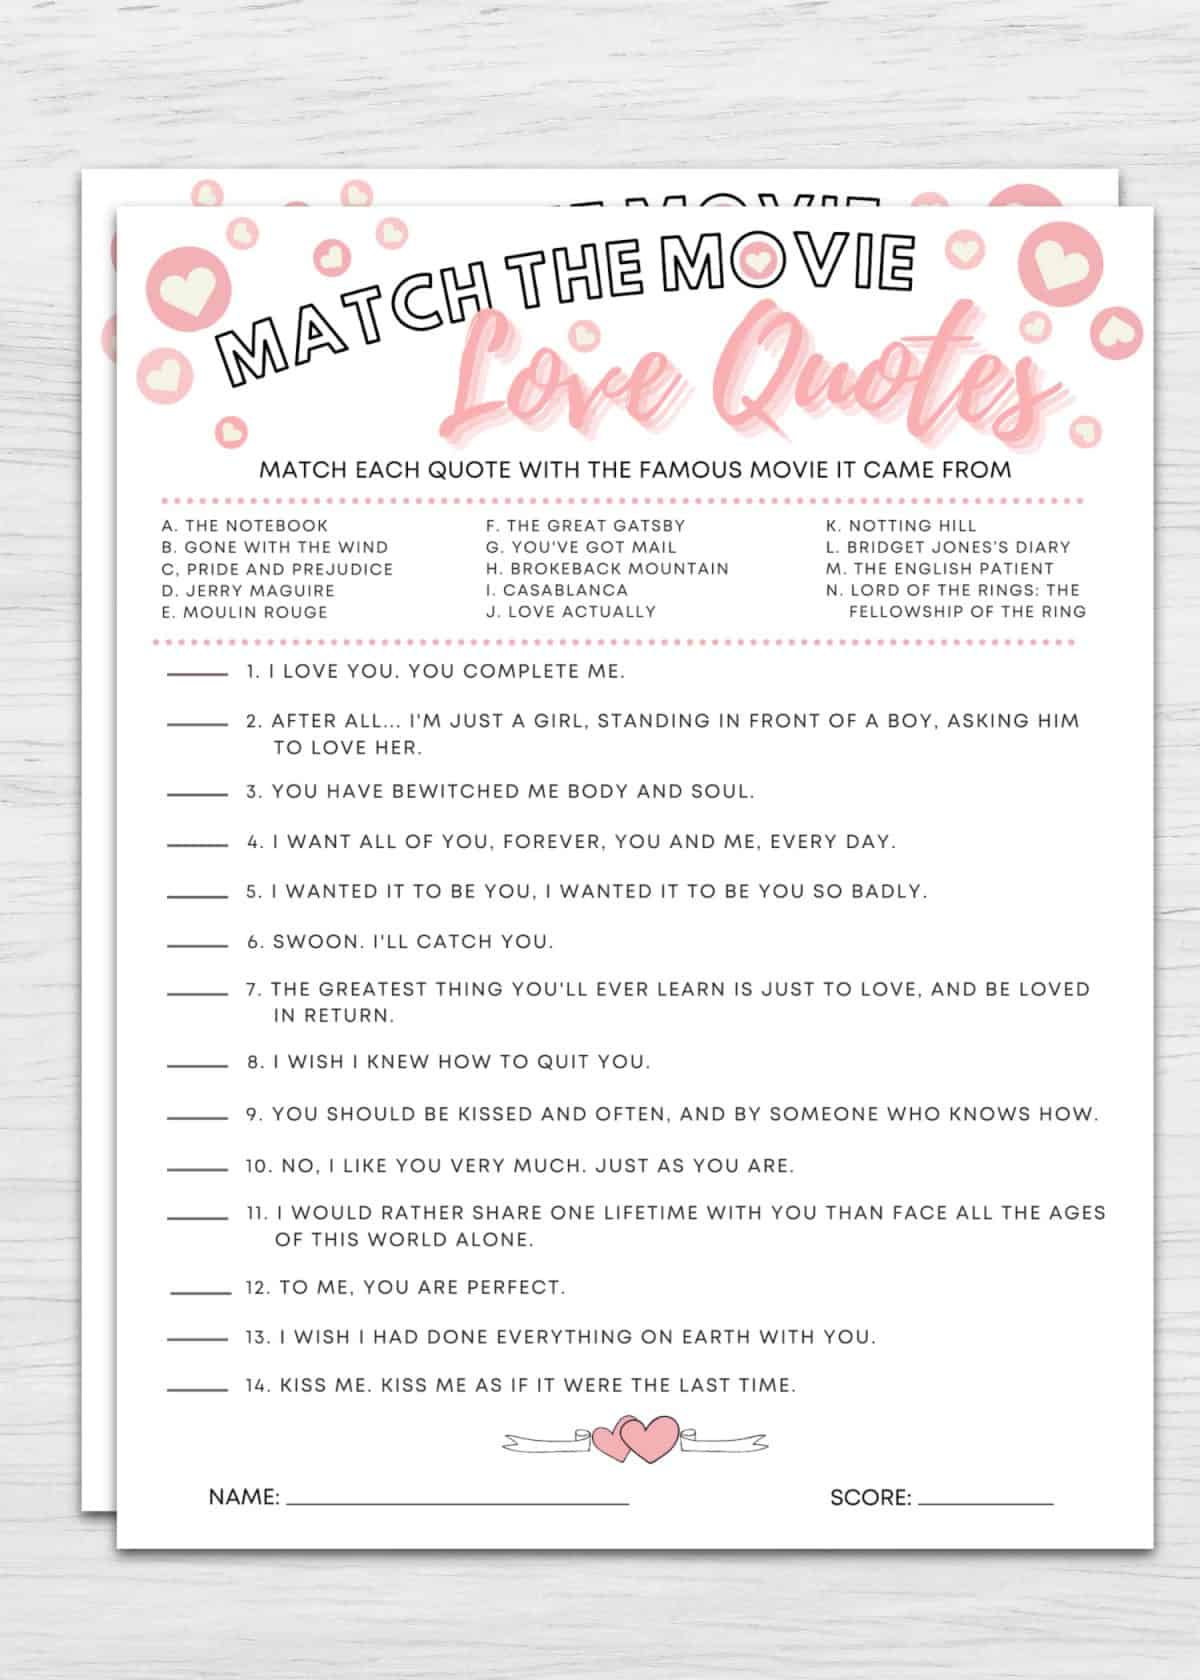 match the movie love quotes bridal shower game